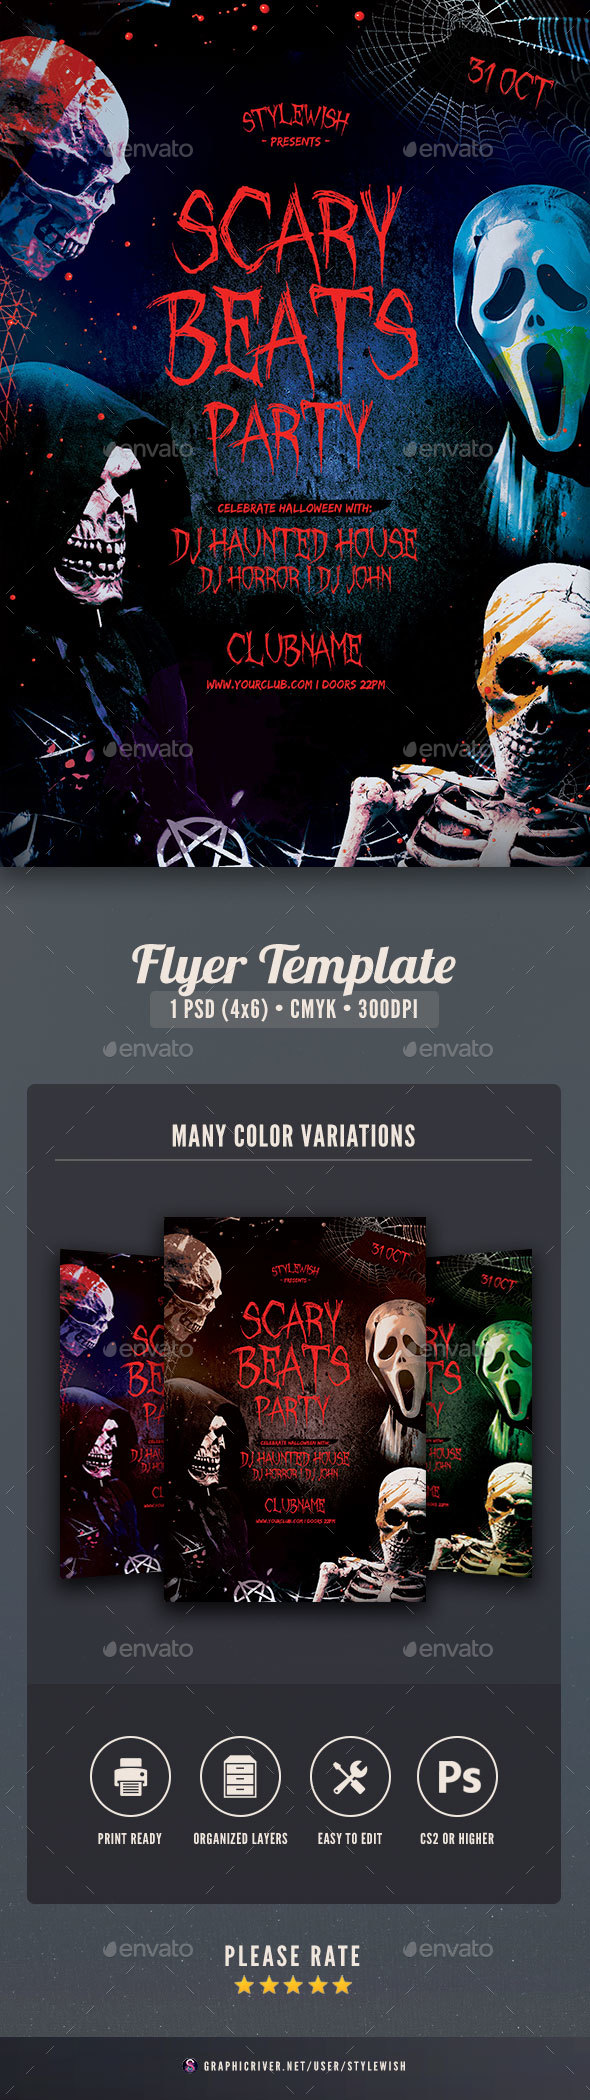 Scary Beats Party Flyer - Clubs & Parties Events